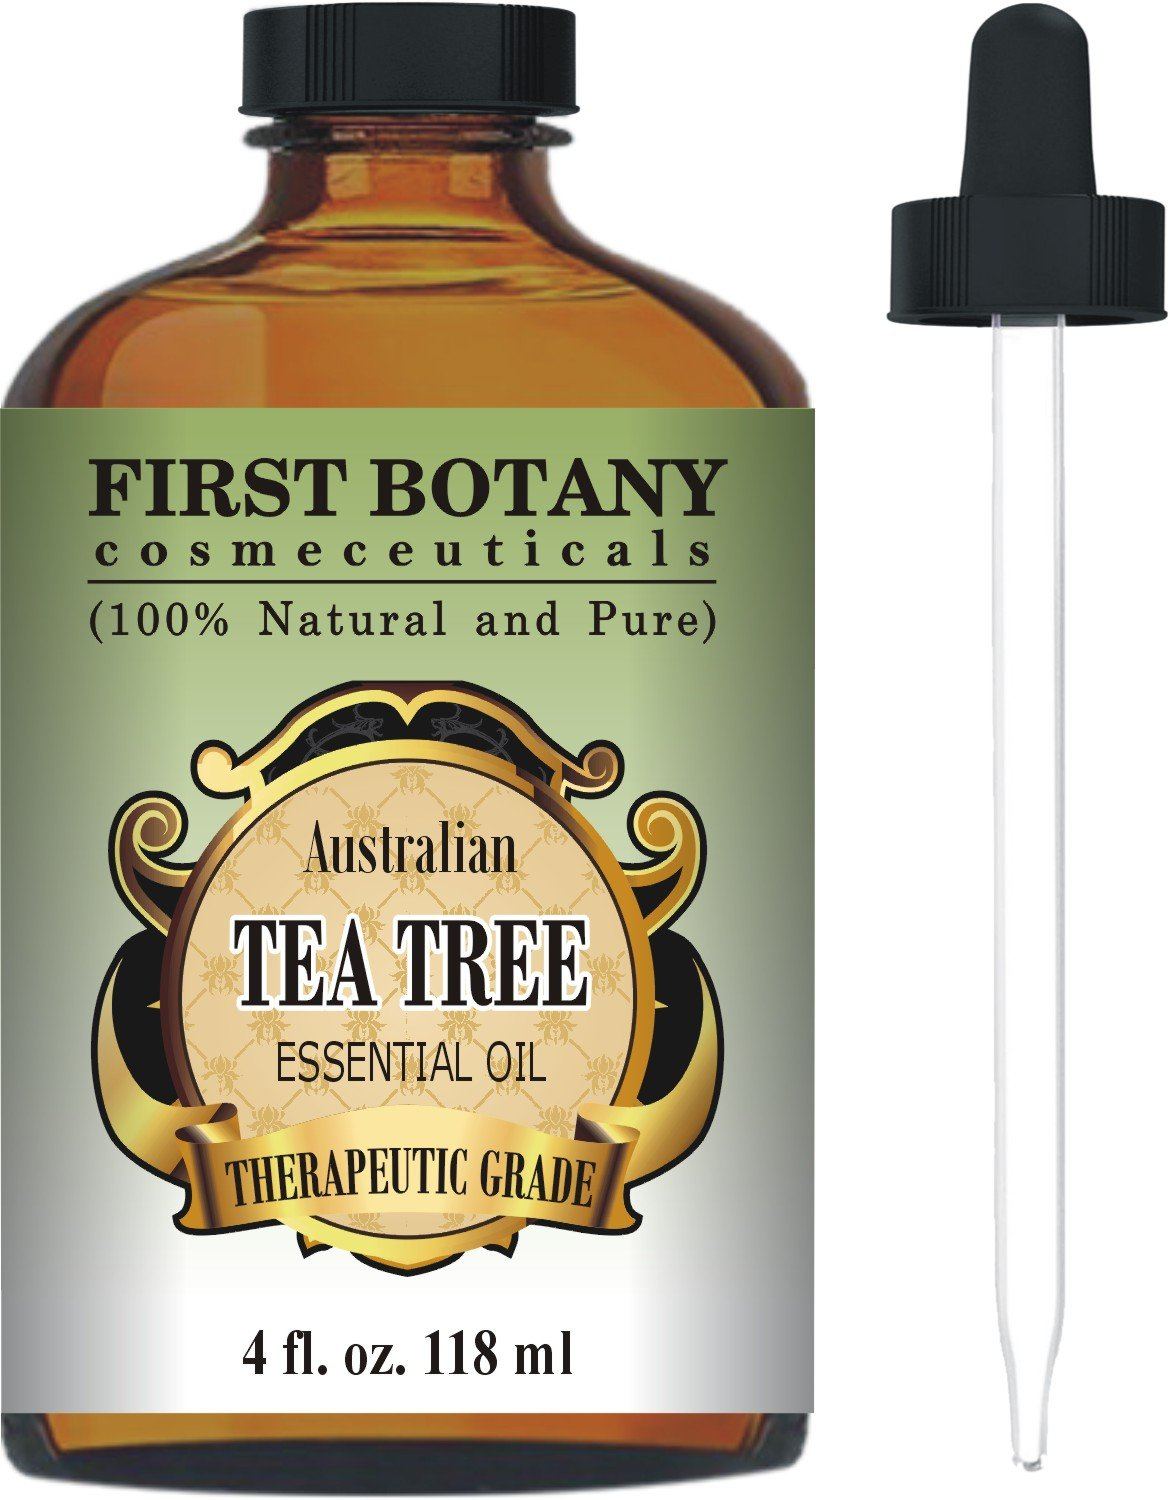 First Botany Cosmeceuticals Australian Tea Tree Oil, 4 fl. oz. with Glass Dropper